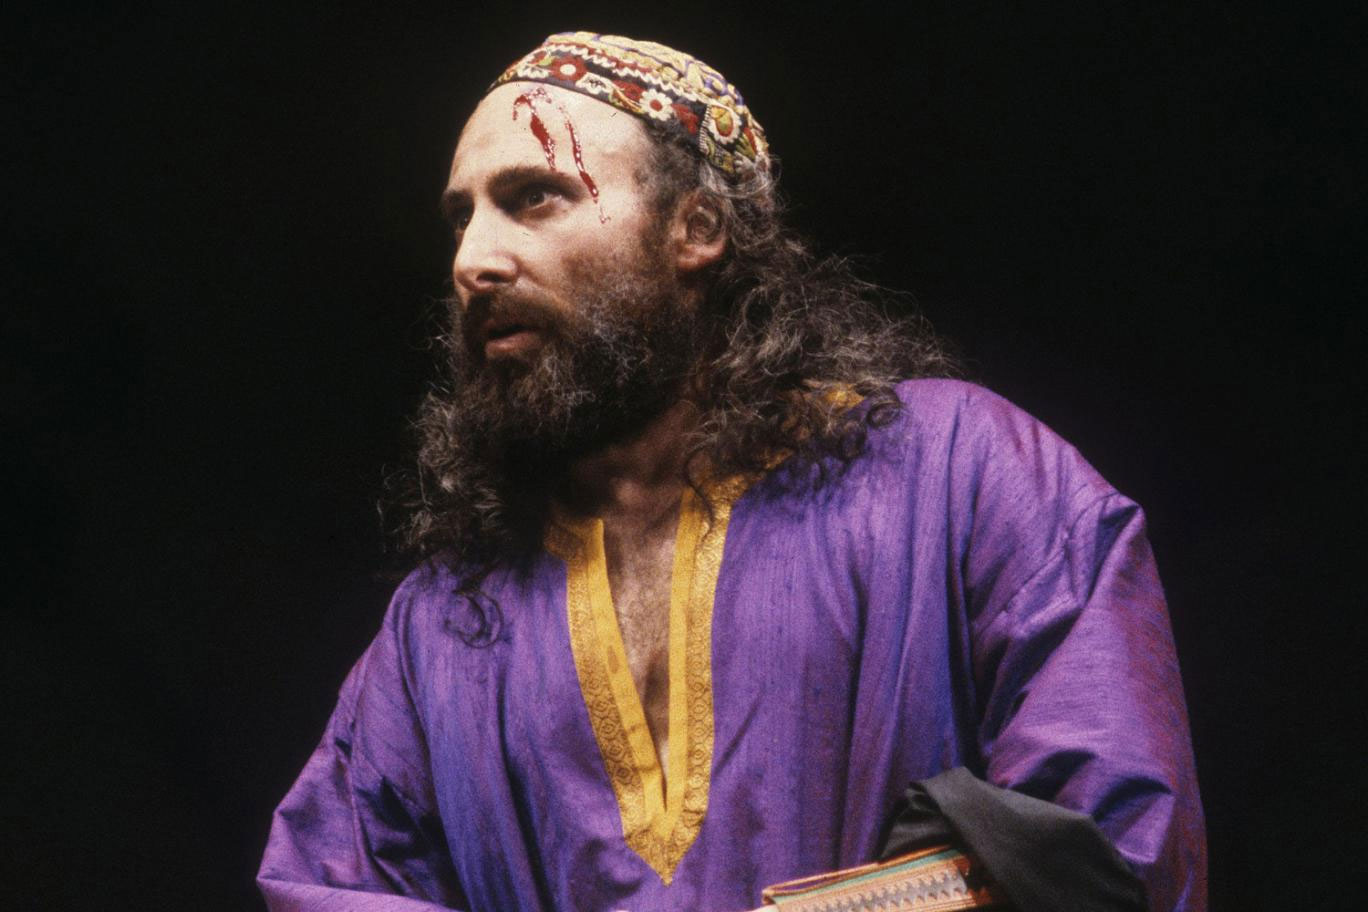 Antony Sher as Shylock in the RSC production of The Merchant of Venice (1987), Photo by Ivan Kyncl